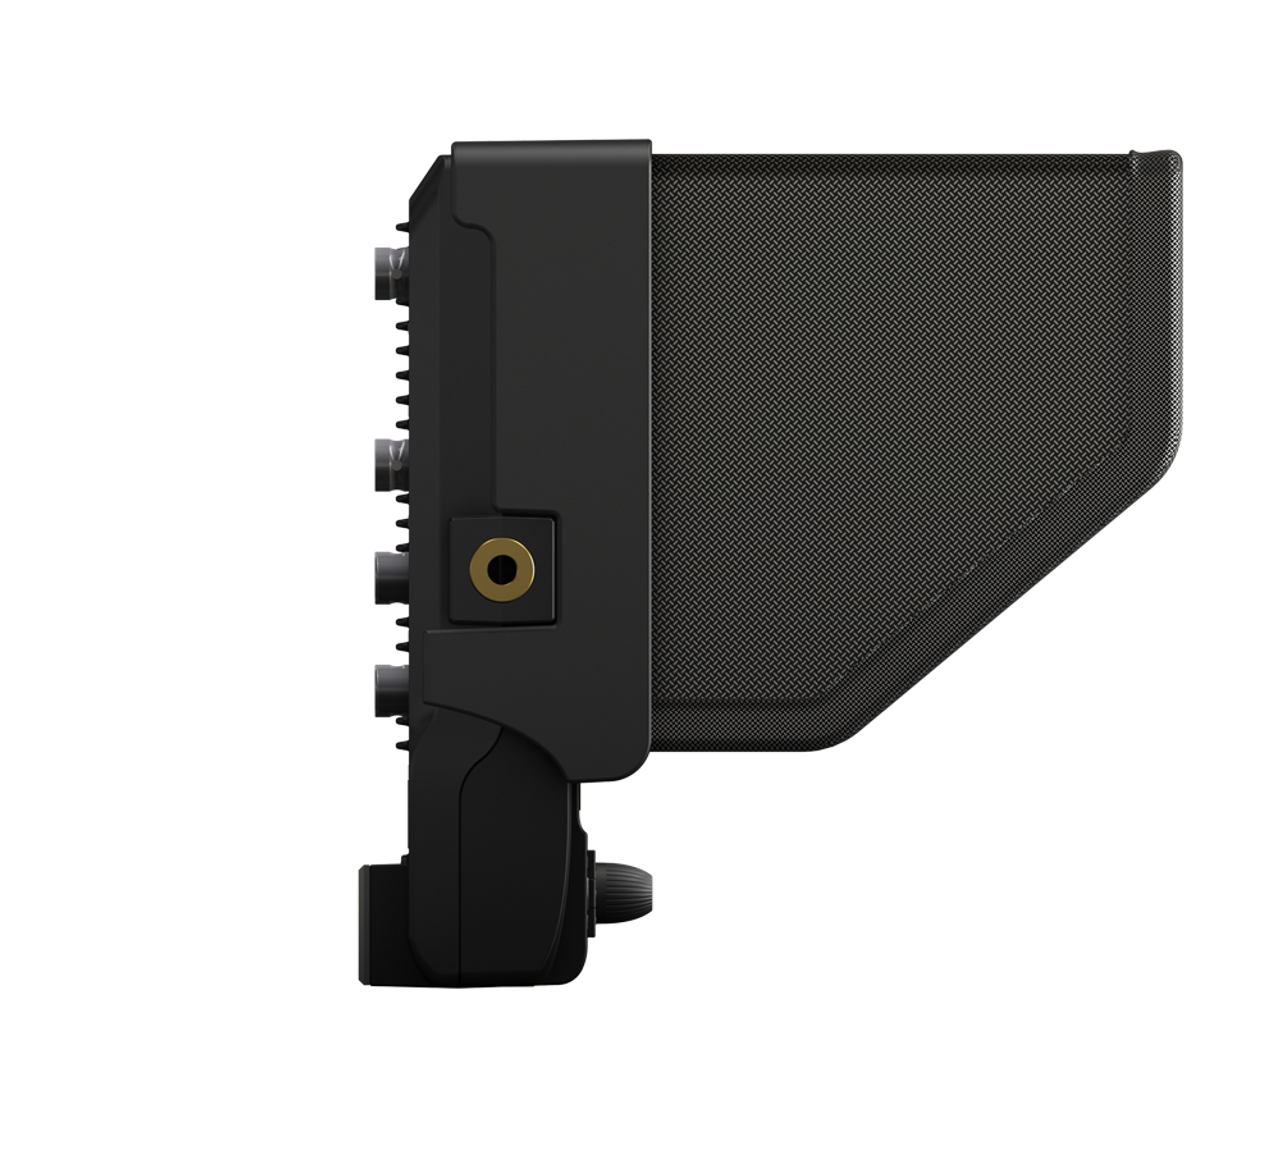 663/S2 (663/O/P/S2) (3G SDI in & out, with Waveform Function, BlackMagic Compatible)